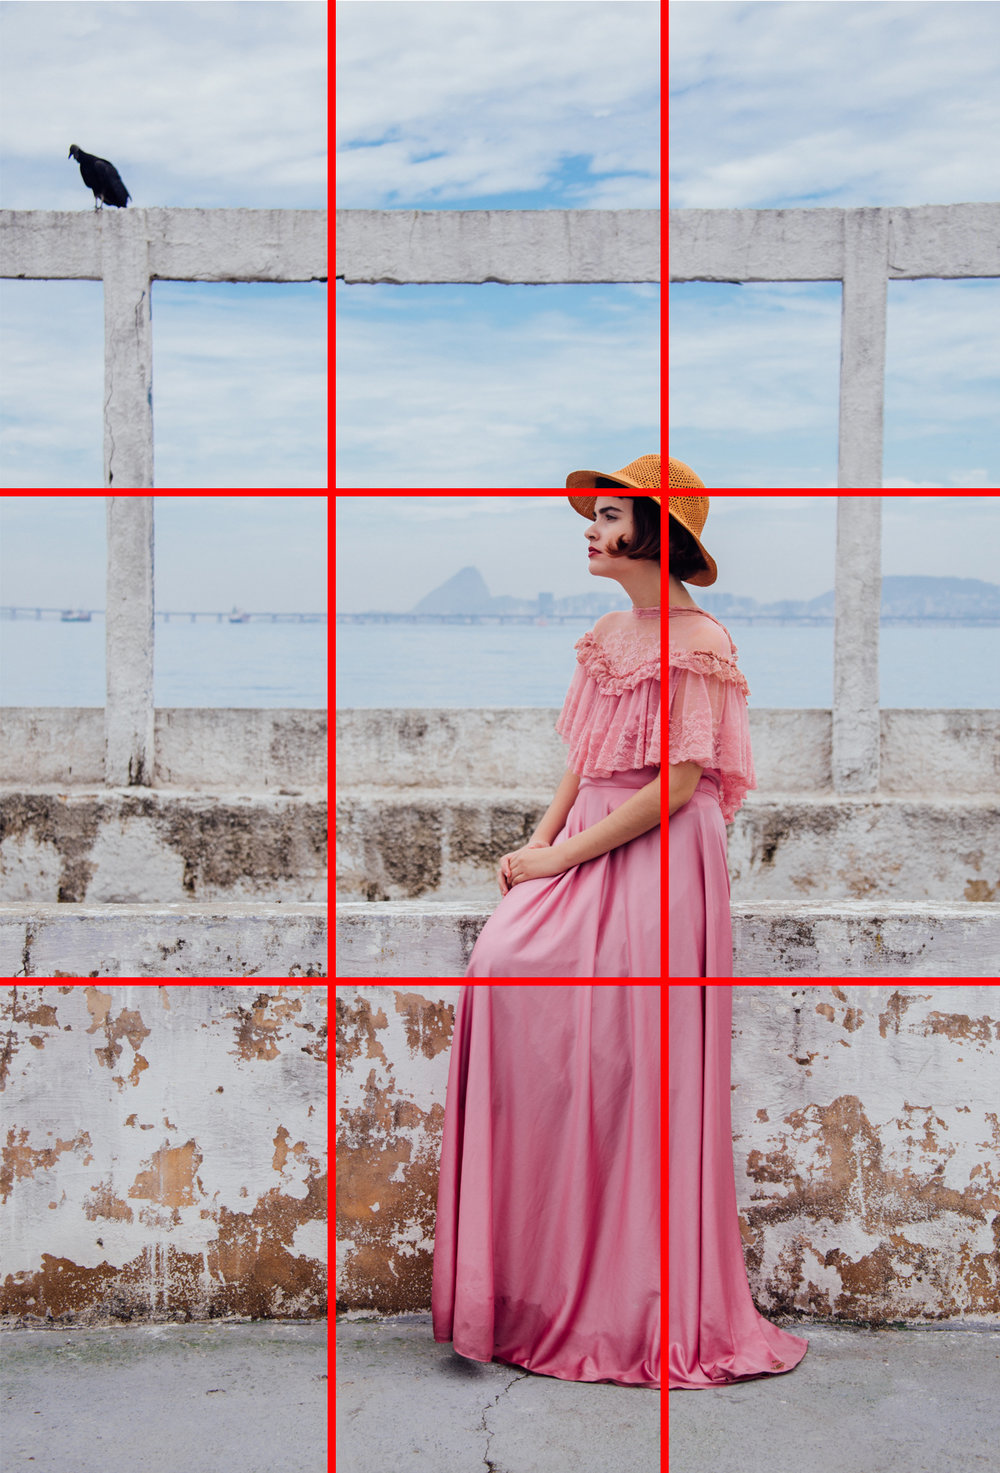 Rule of Thirds - Photography 101 - nickdjeremiah.com